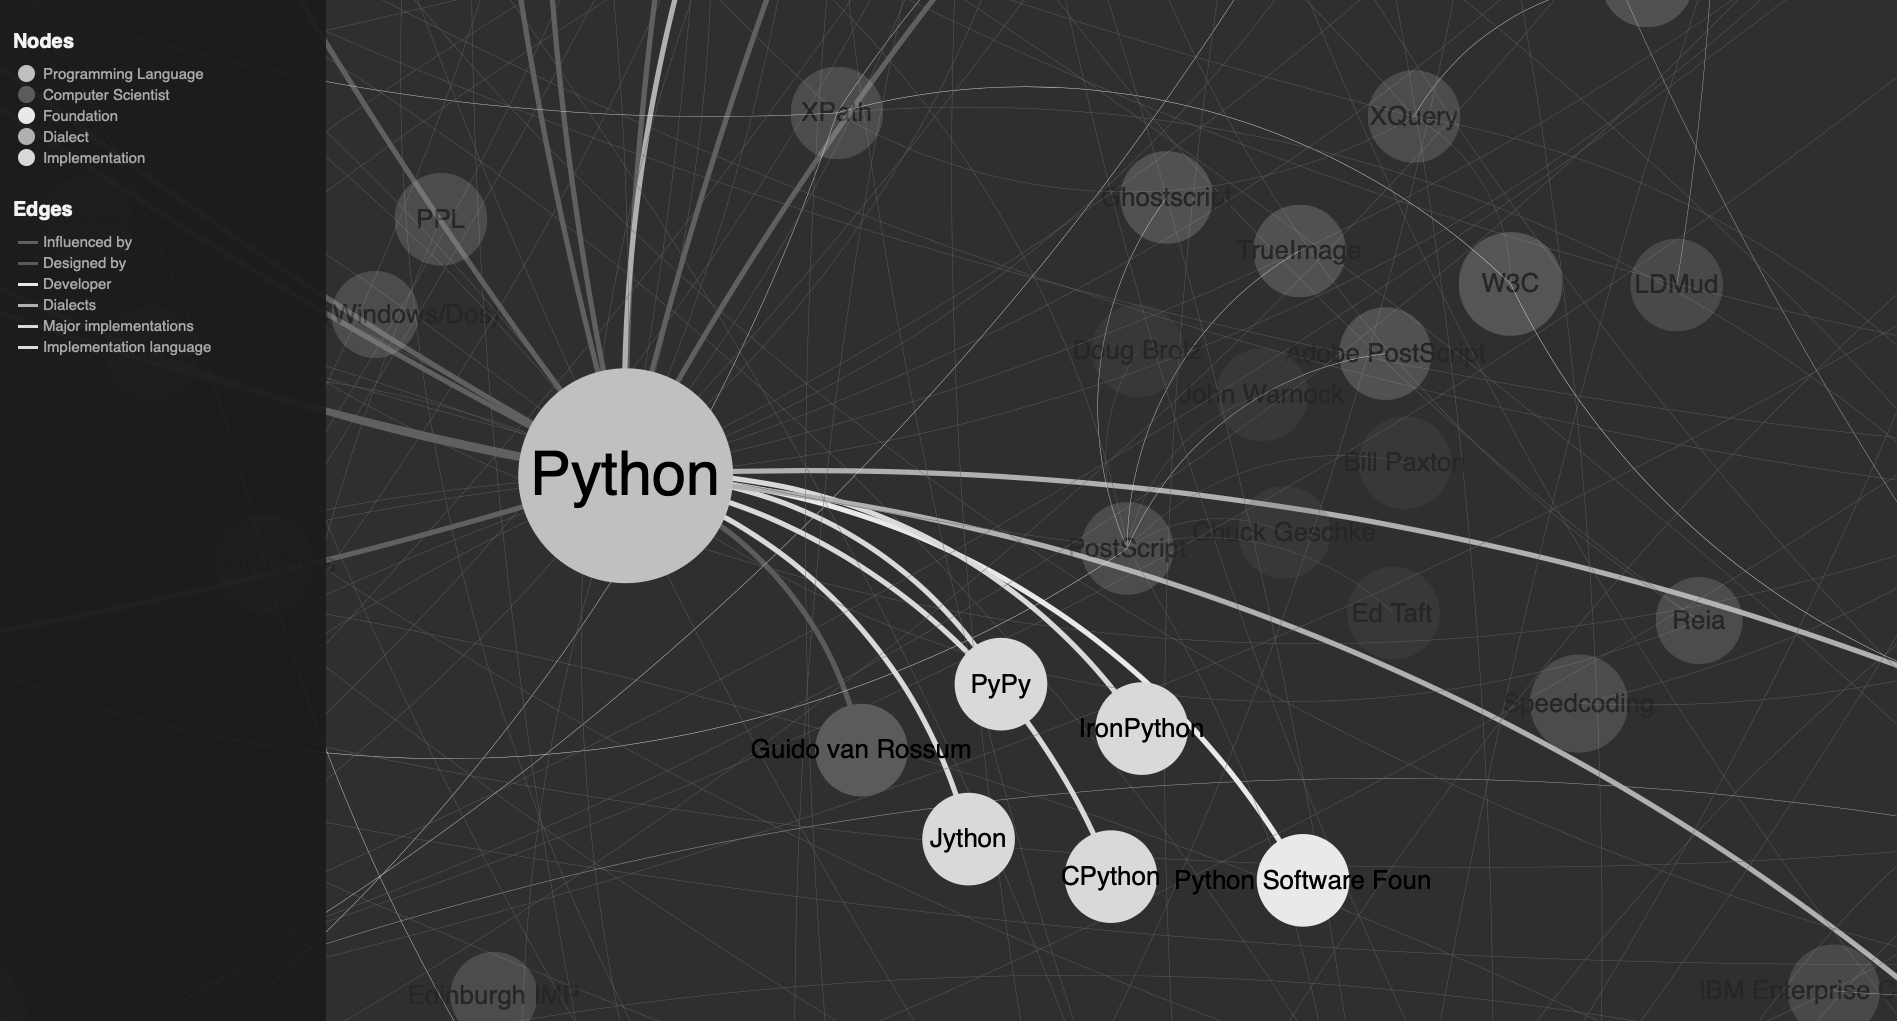 Programming language network